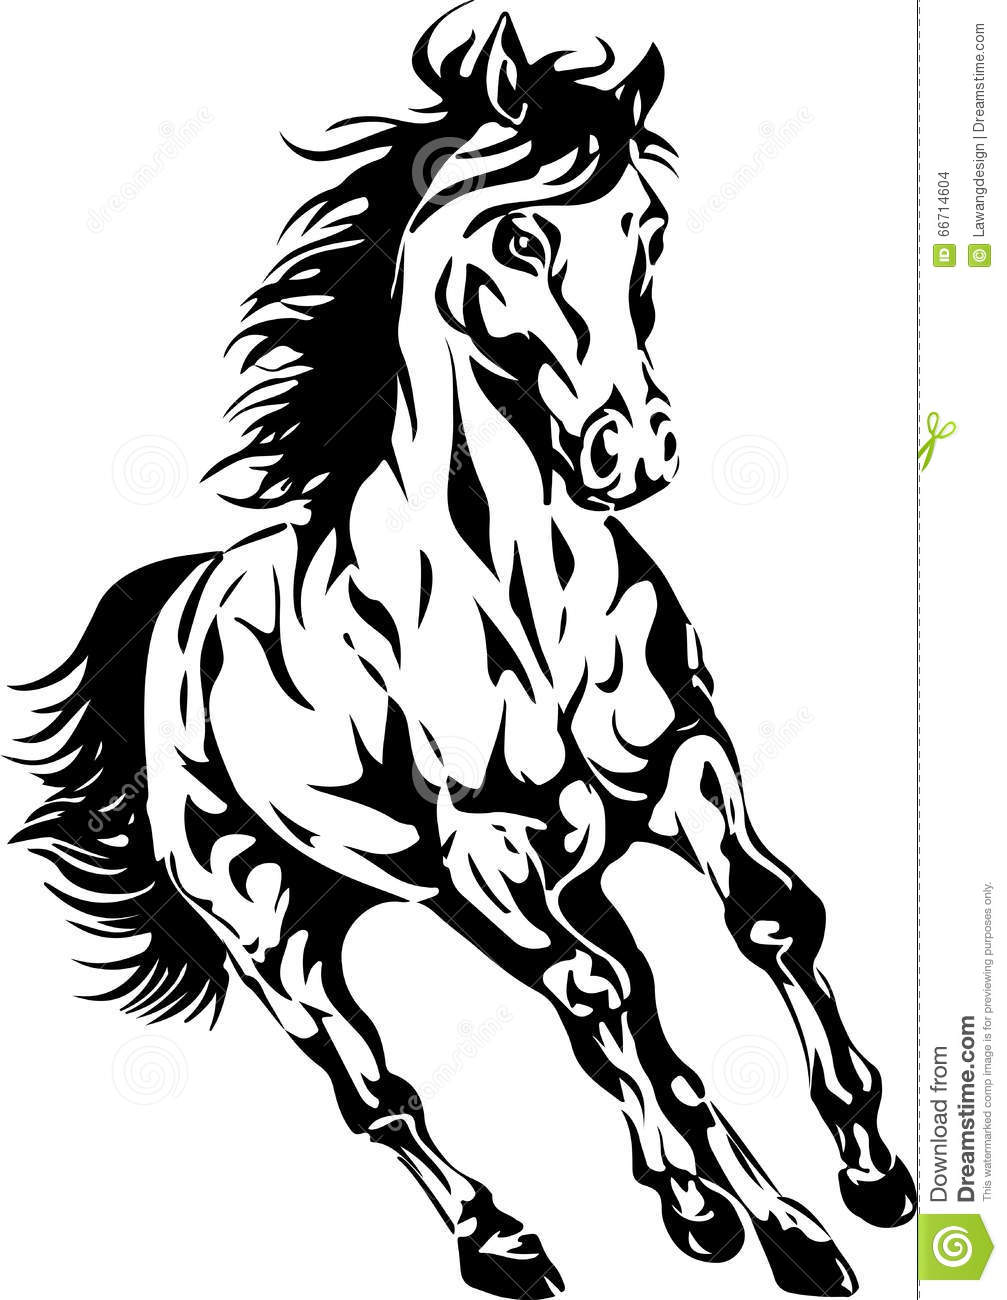 Horse silhouette metallic color on a golden background for Cowboy silhouette tattoo